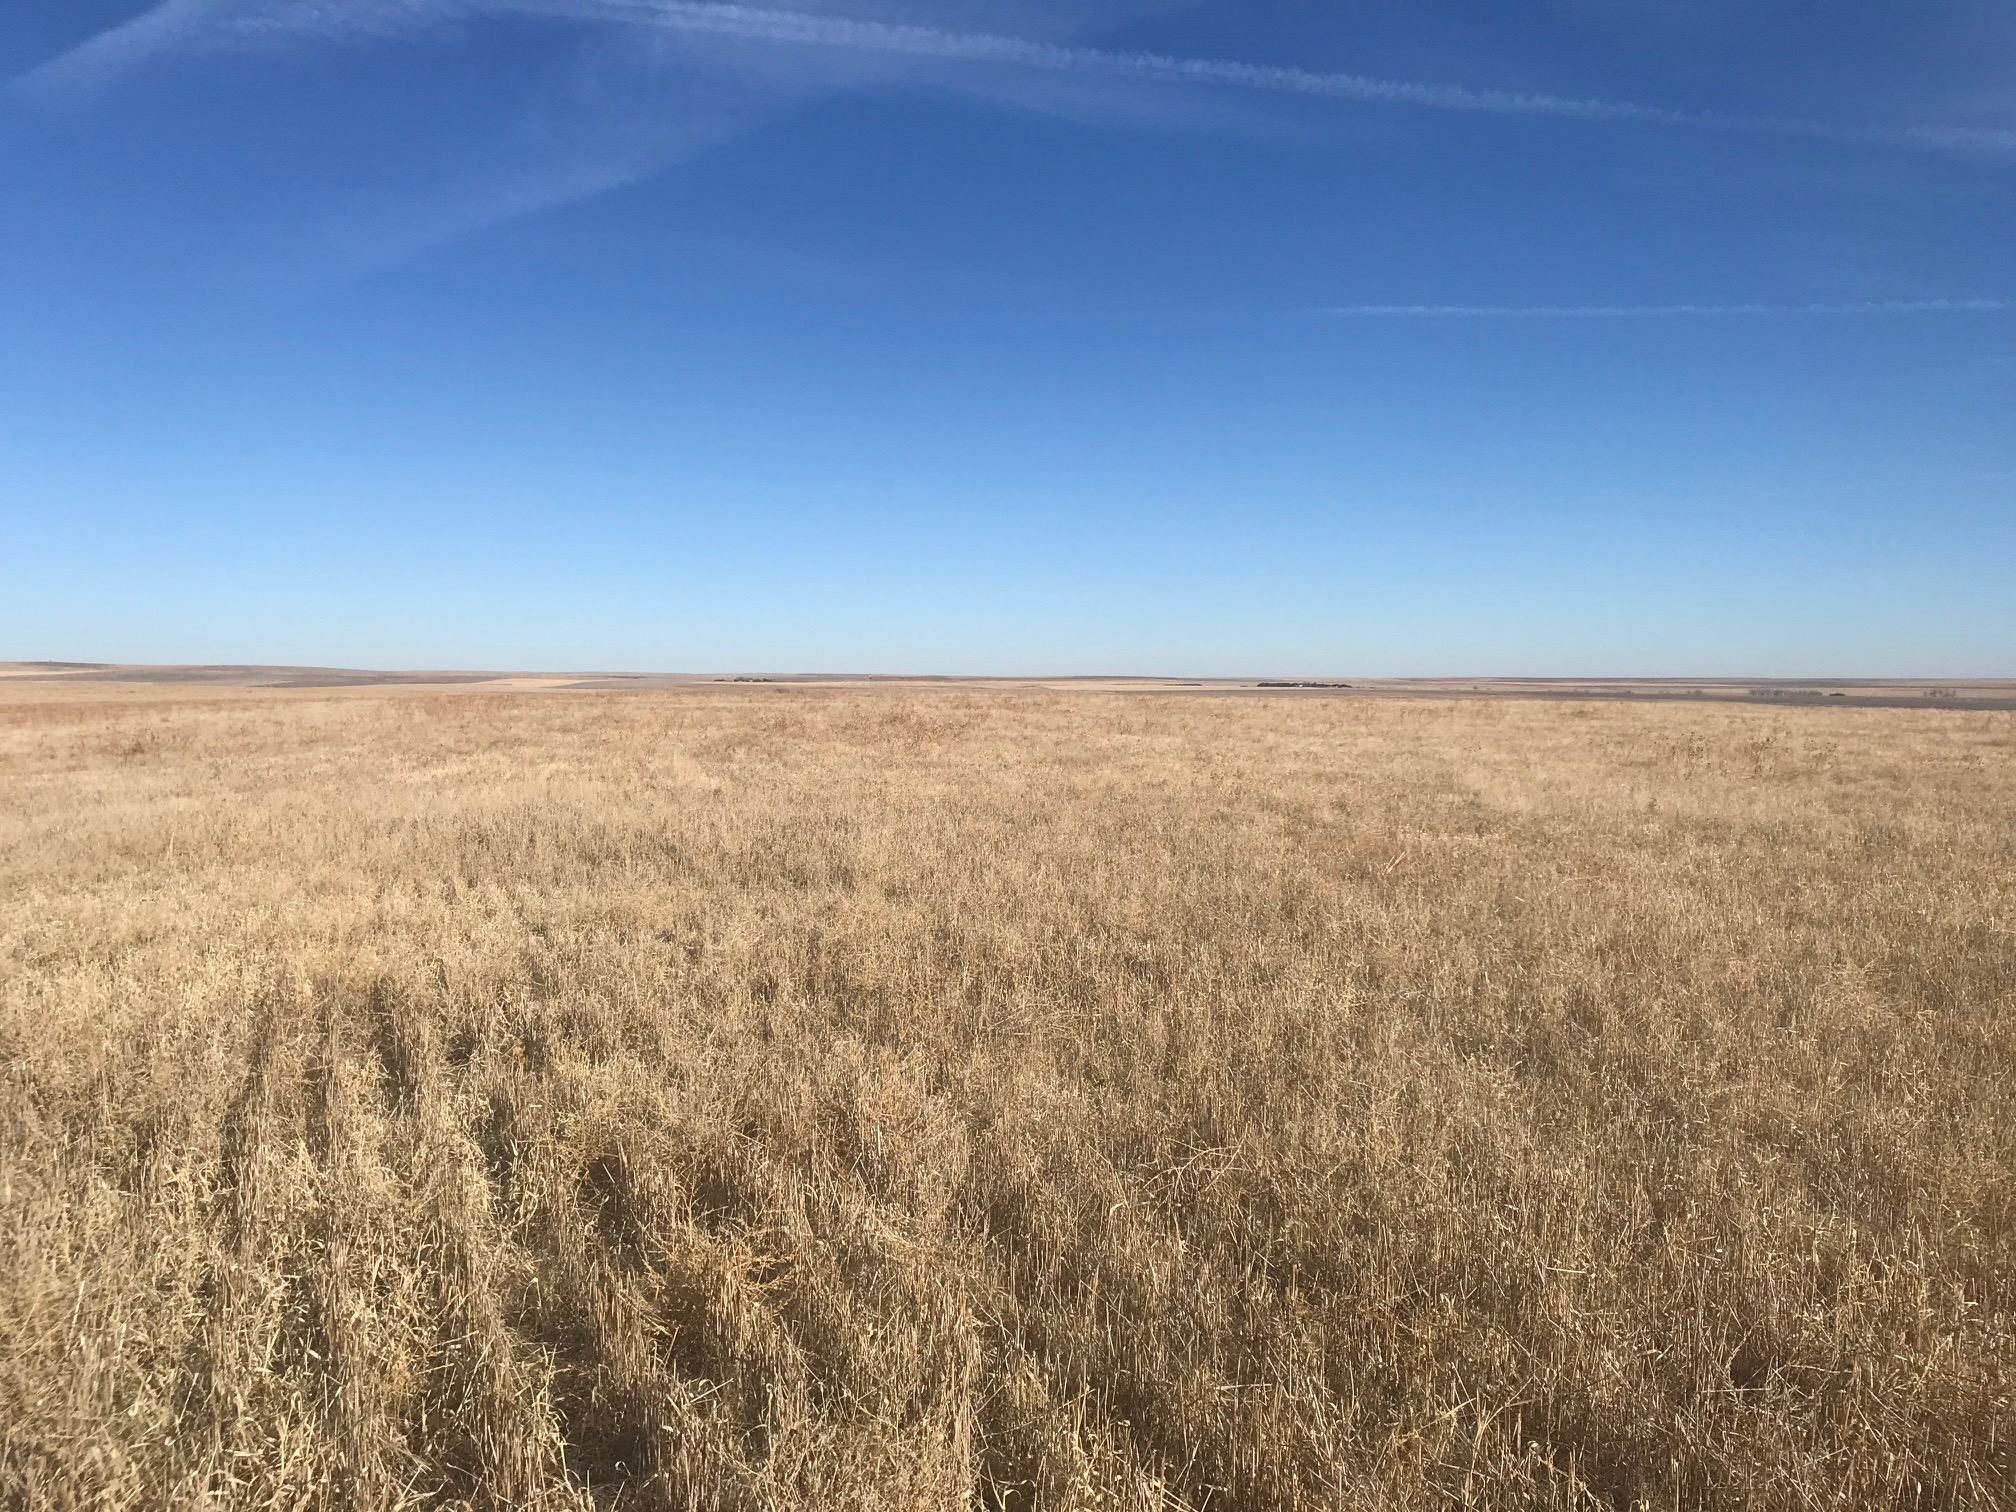 Tract-1-wheat-stubble-south-side-3.jpg